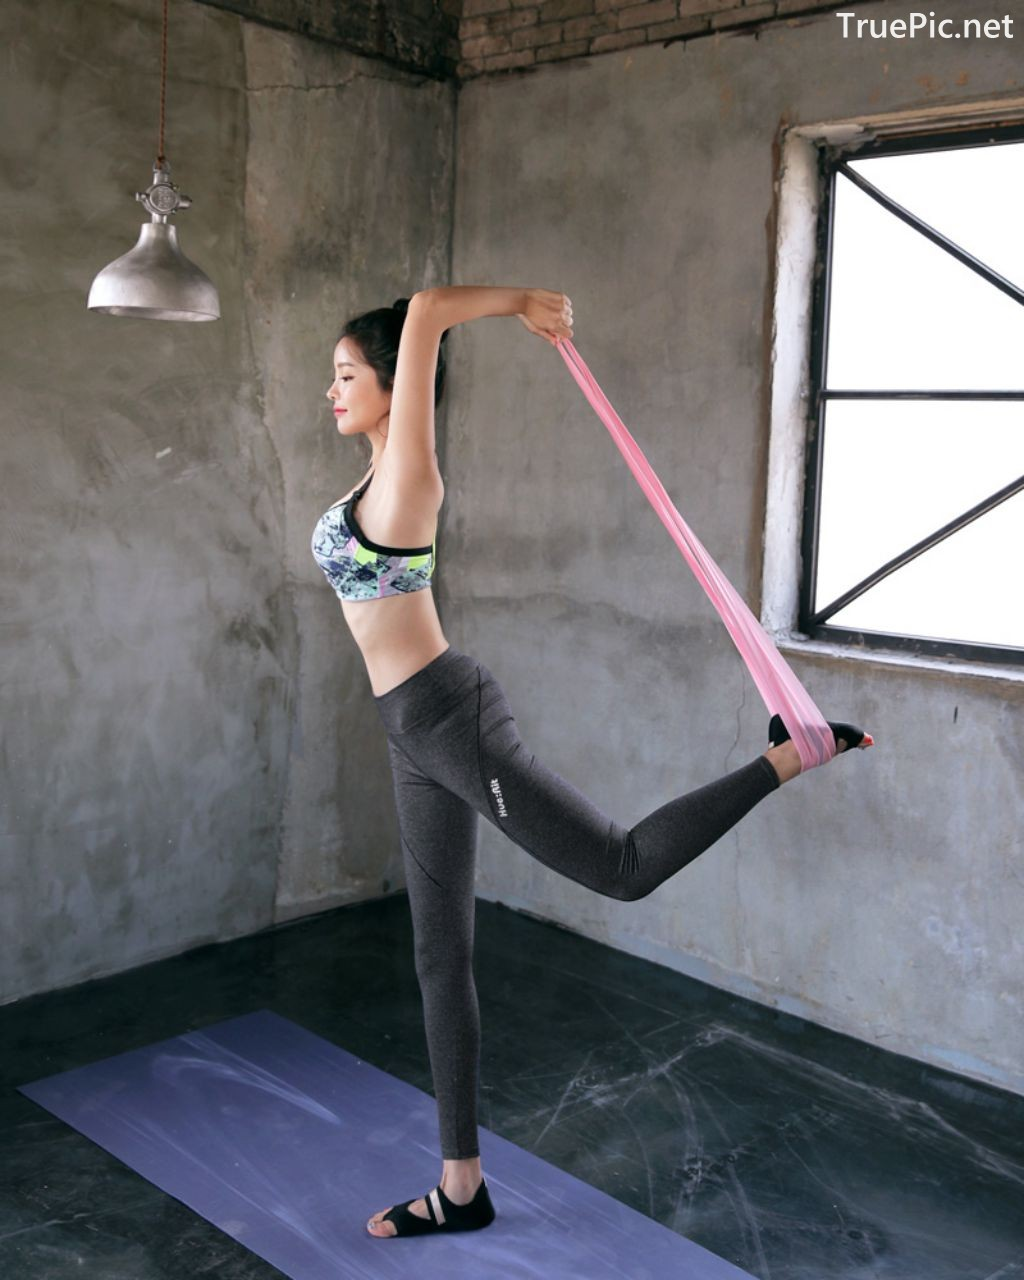 Image-Korean-Fashion-Model-Jin-Hee-Fitness-Set-Photoshoot-Collection-TruePic.net- Picture-4